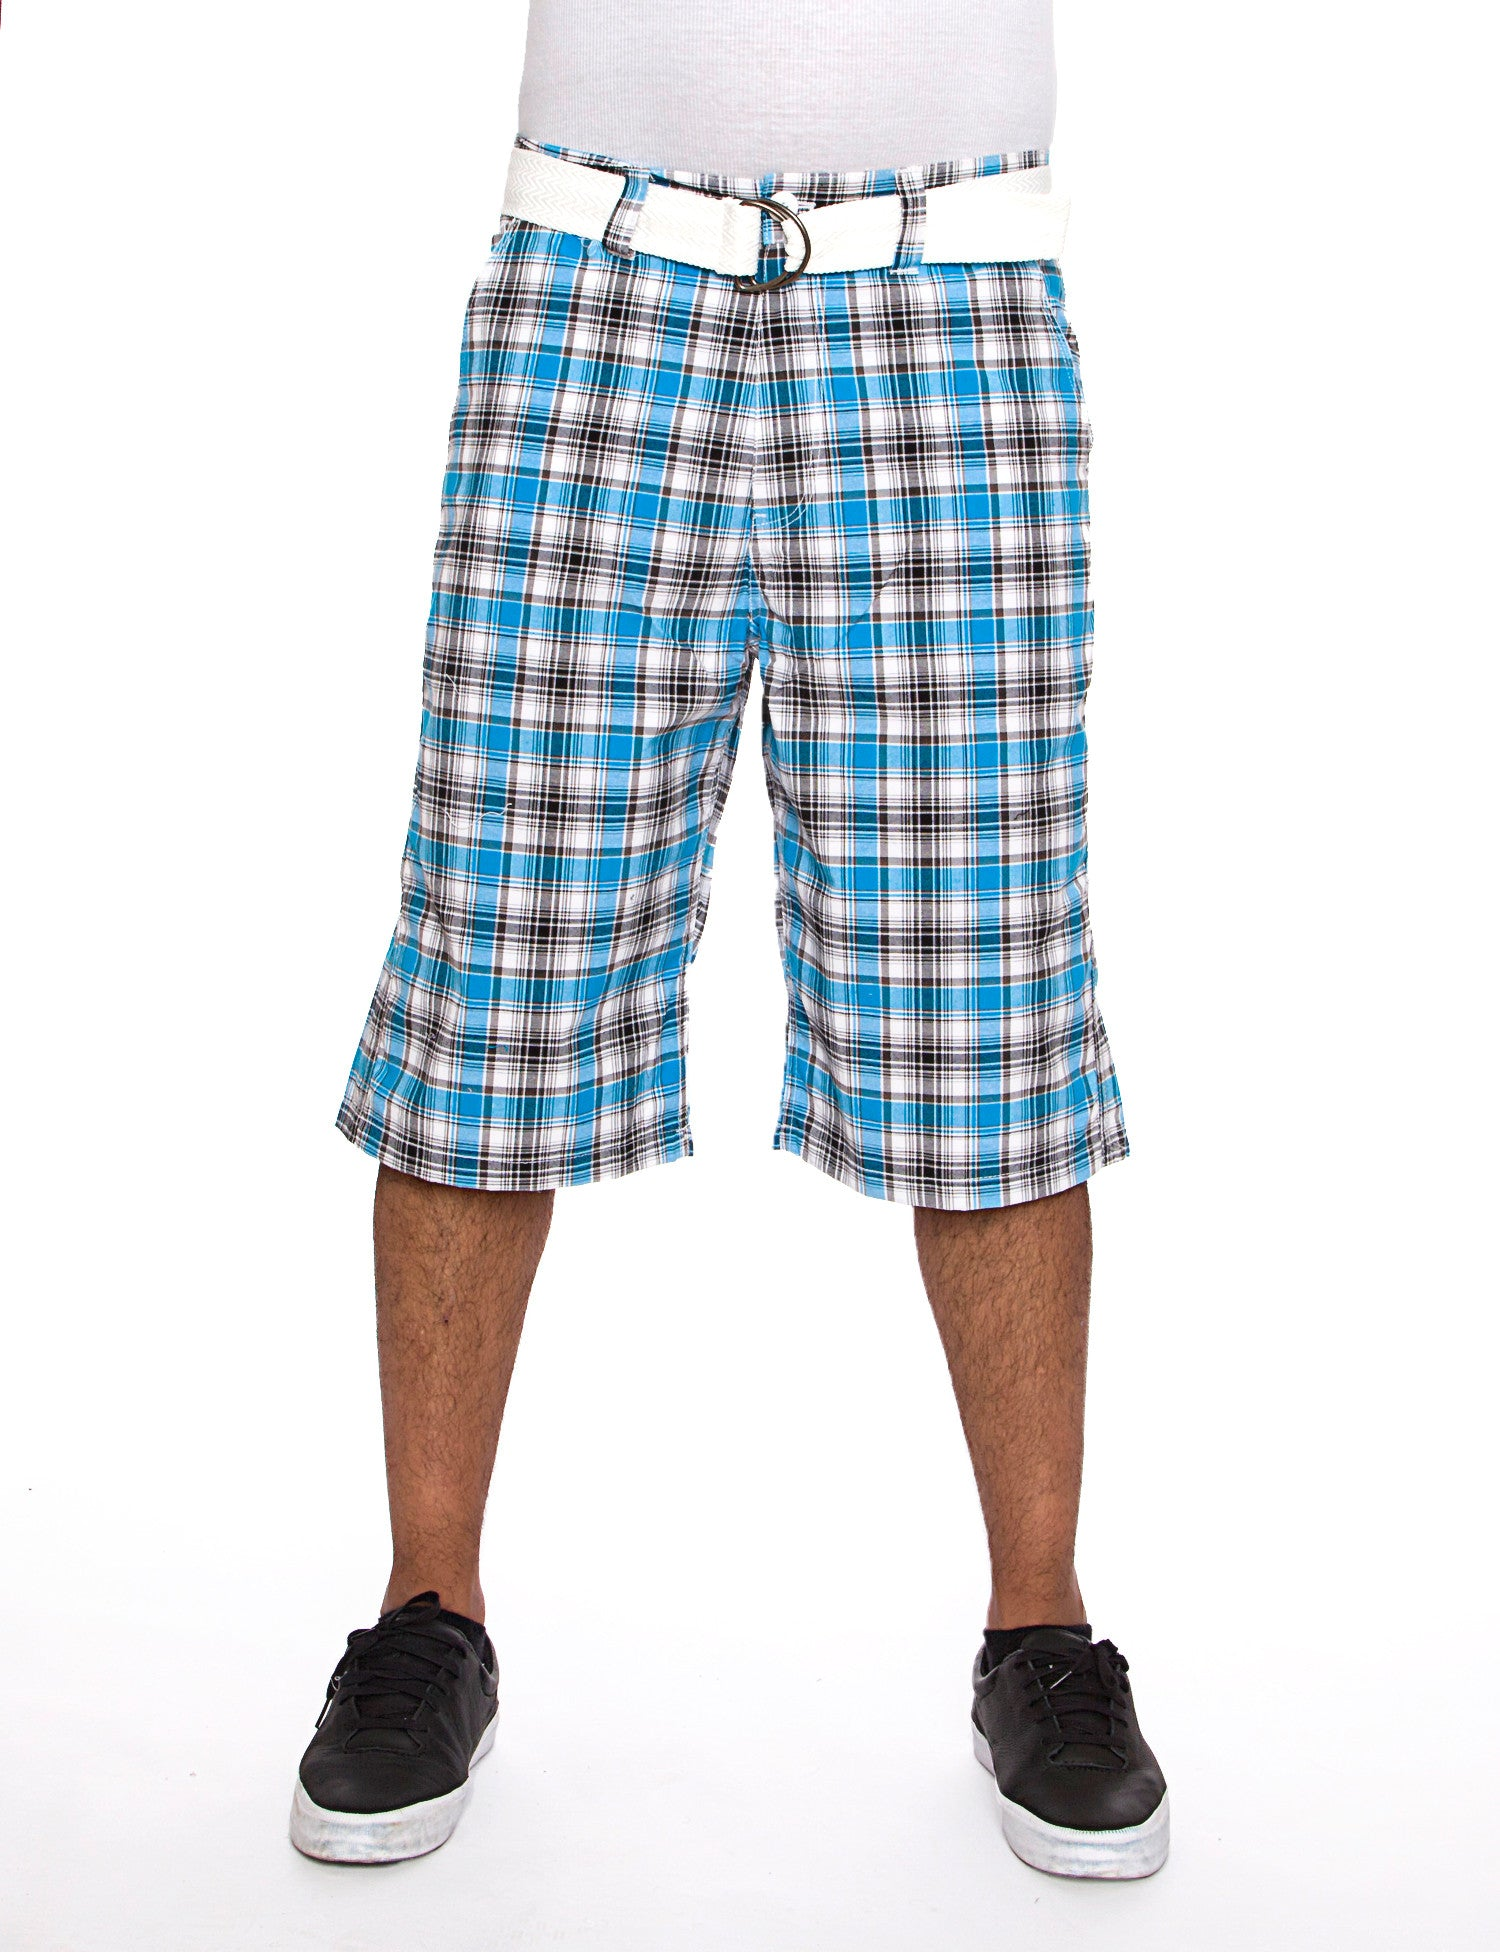 Raw Blue Shorts Mens Plaid Short Blue